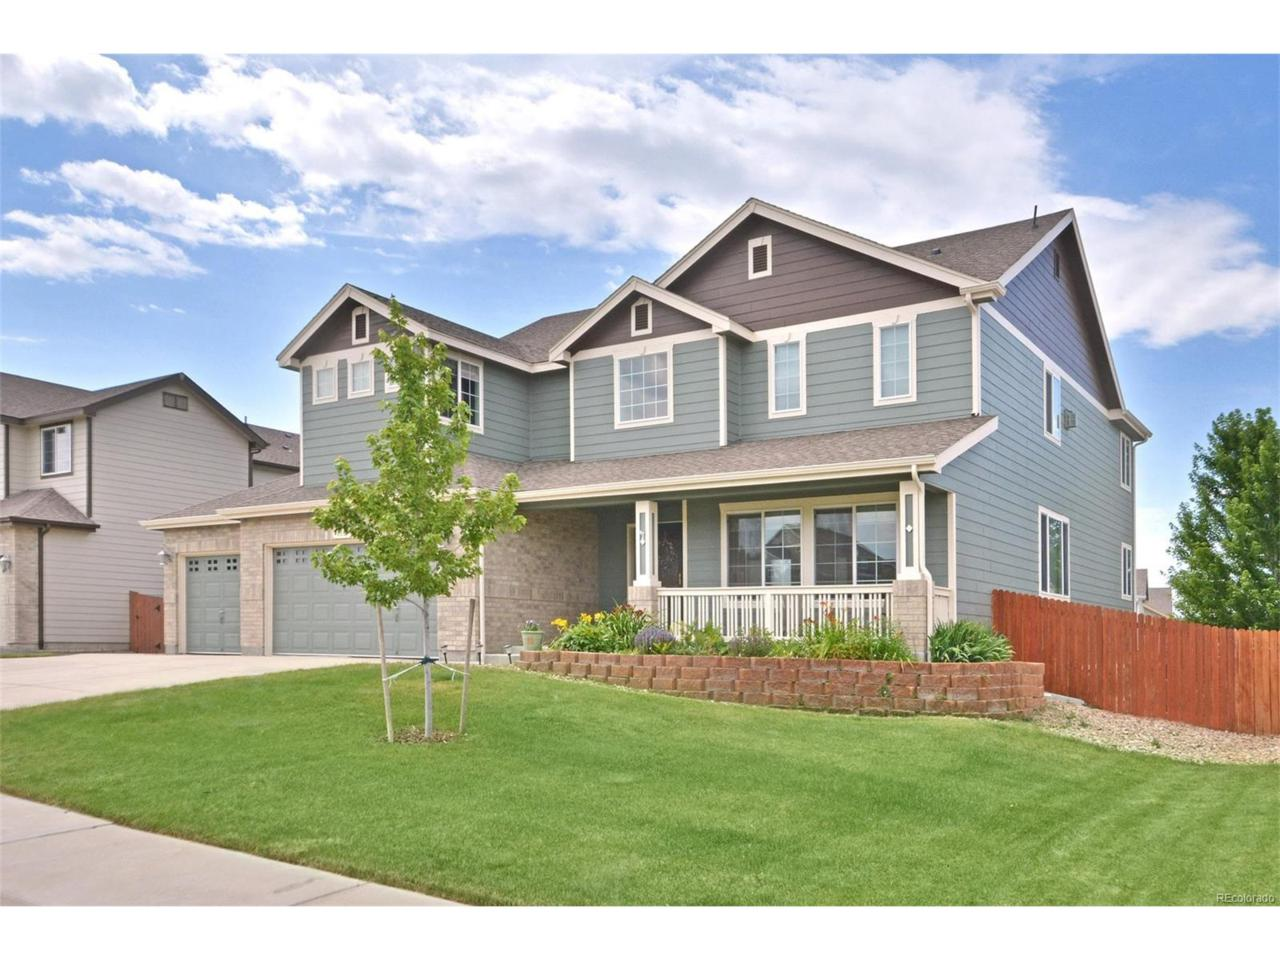 810 Reliance Drive, Erie, CO 80516 (MLS #2797184) :: 8z Real Estate